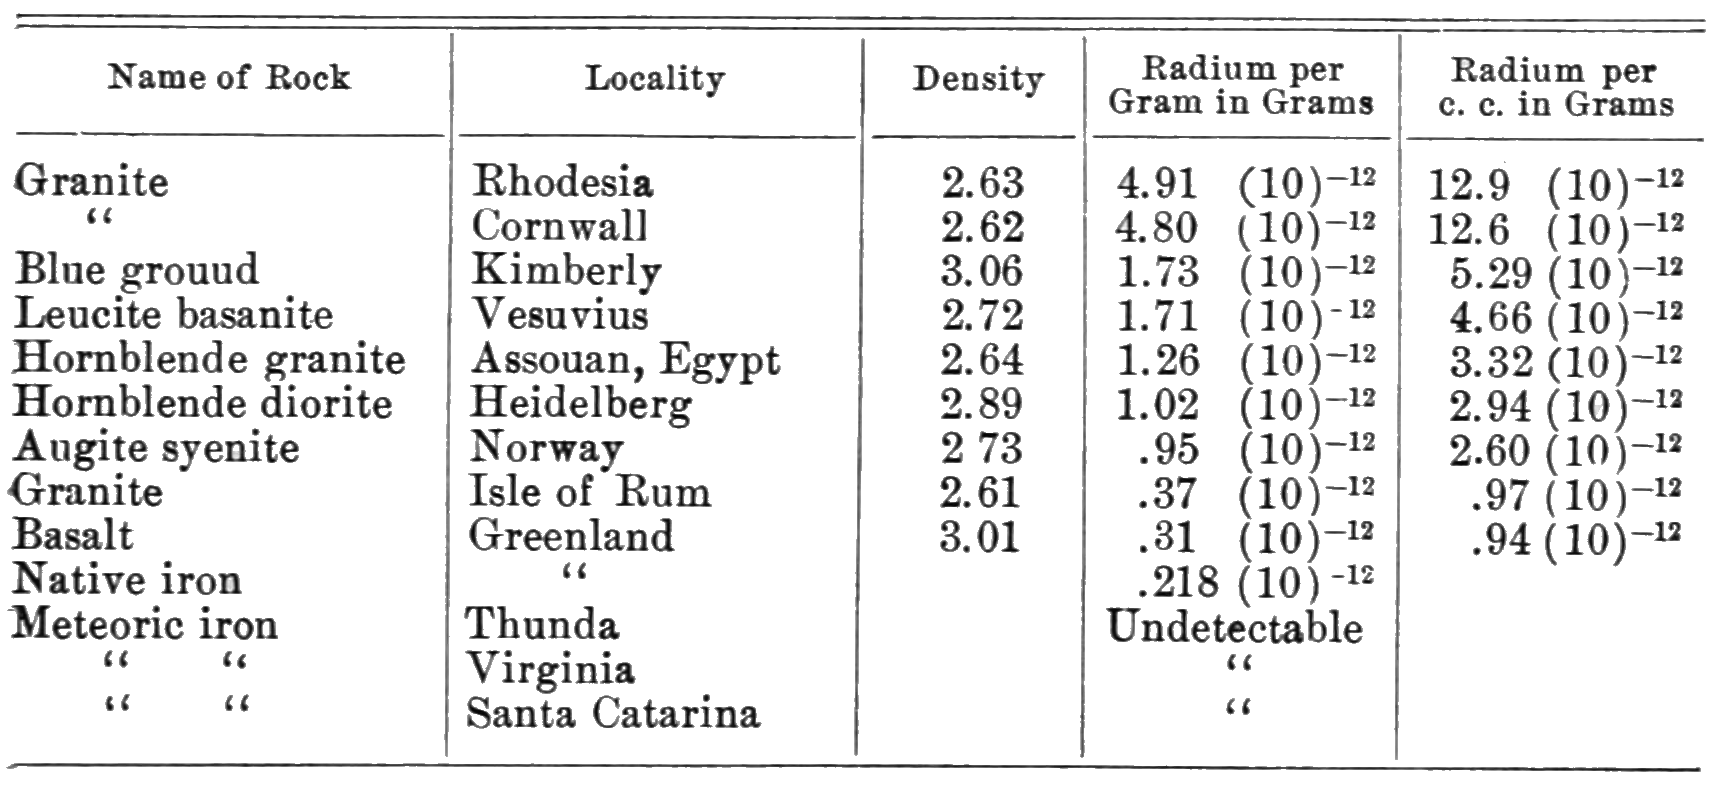 PSM V71 D535 Radium content of igneous rocks.png